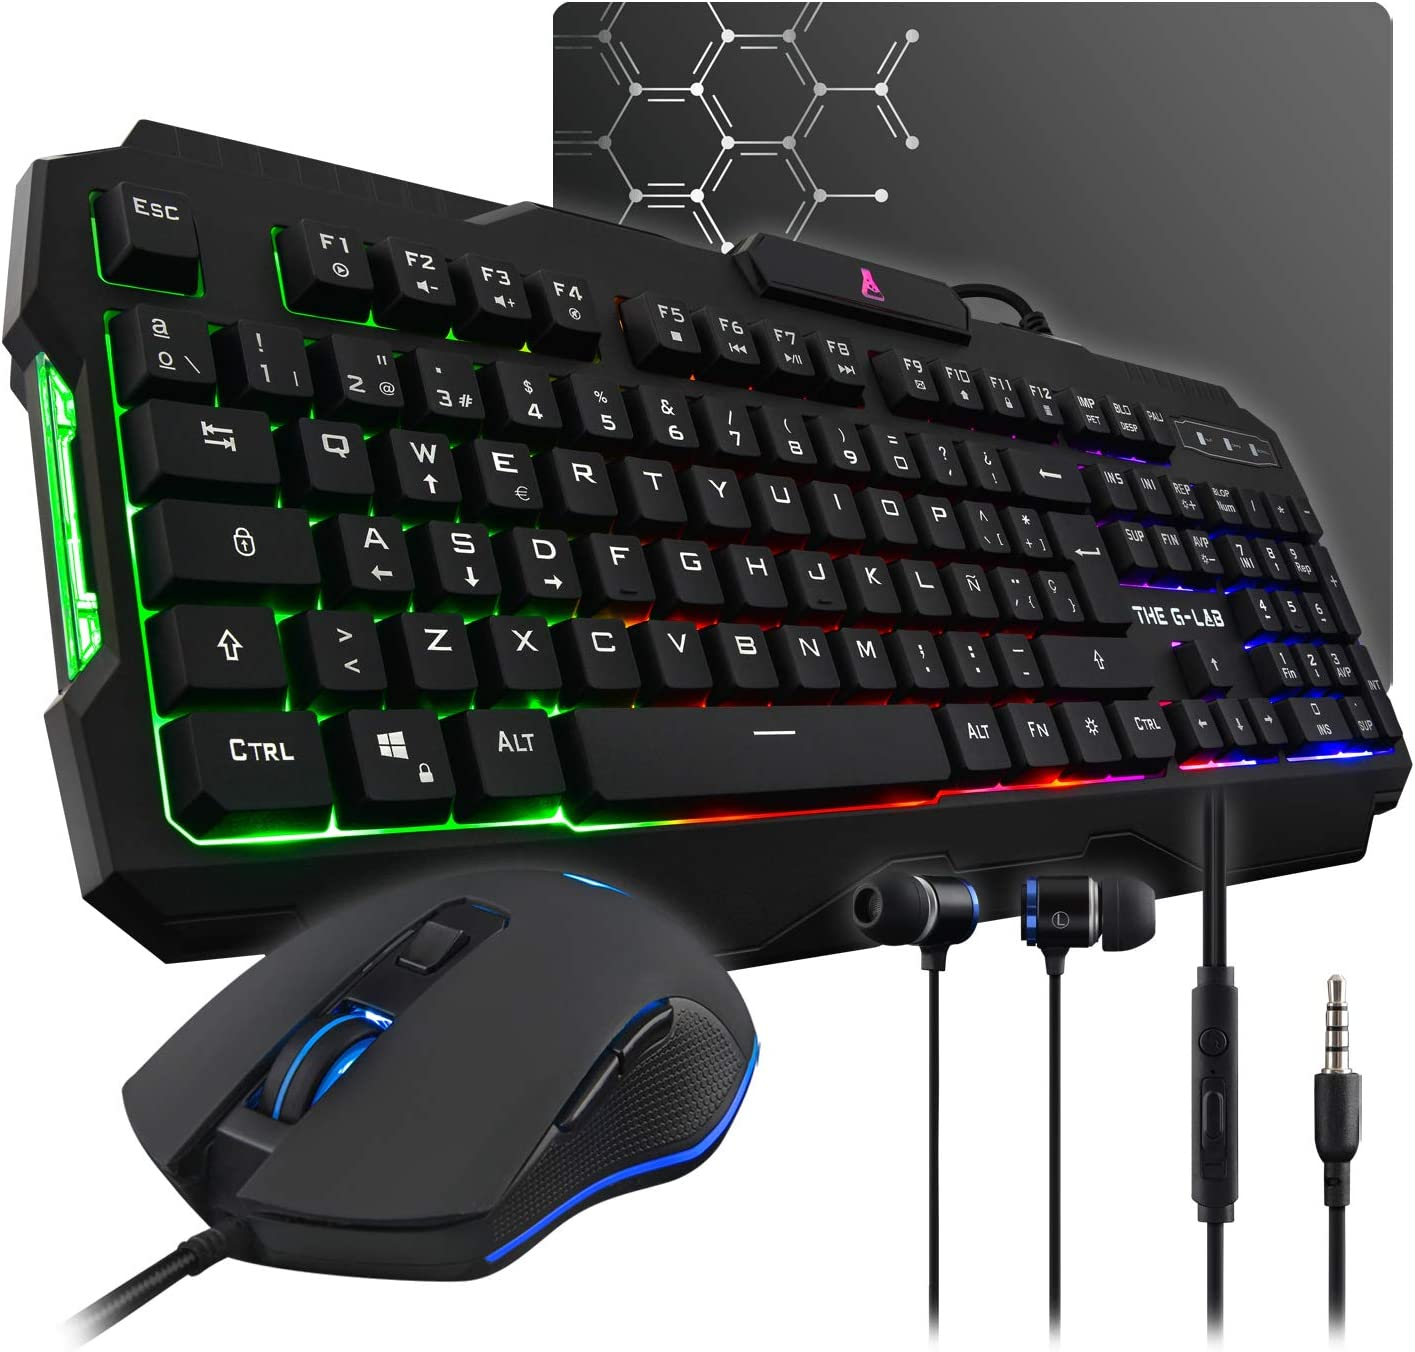 THE G-LAB Combo HELIUM 4 en 1 Gaming Bundle - Teclado Gaming QWERTY – Incluye Ñ - Retroiluminado, Ratón Gaming de 2400 DPI, Auriculares in-ear, Alfombrilla de Ratón Antideslizante – PC PS4 Xbox One